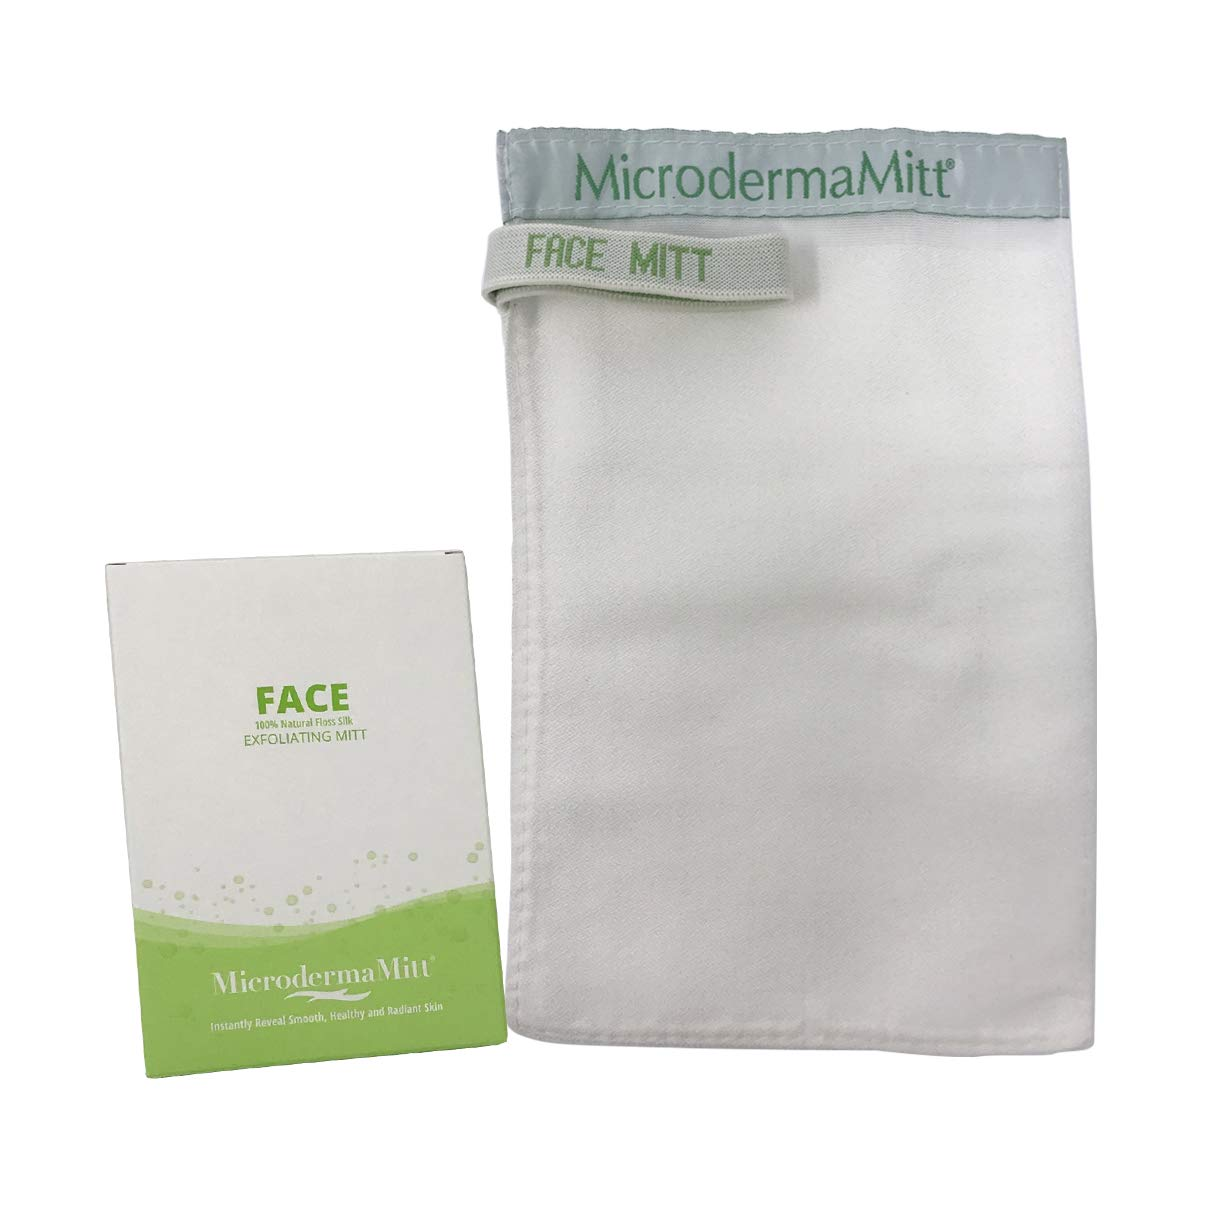 Microdermamitt Deep Exfoliating Face Mitt Firming Dry Skin Treatment-Unclog Pores, Repair Wrinkles, Sun Damage, Remove Imperfections and Invigorate Your Skin Inc. FM